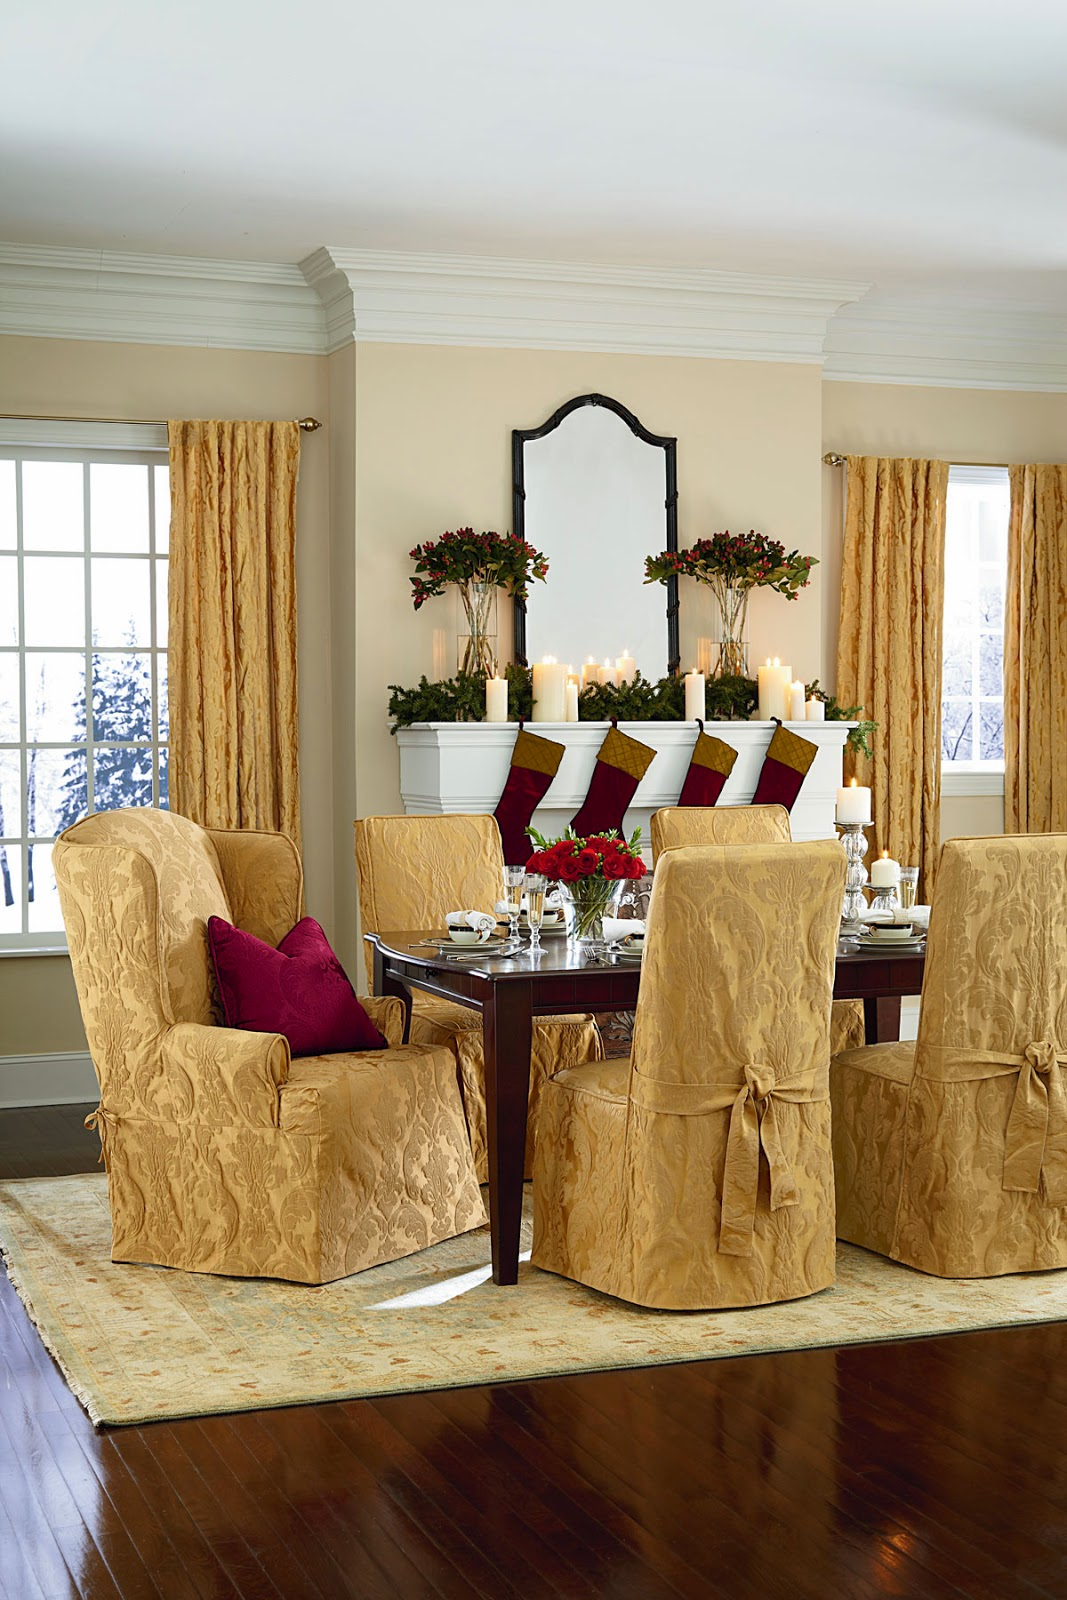 Sure Fit Slipcovers Tis The Season To Entertain In Style